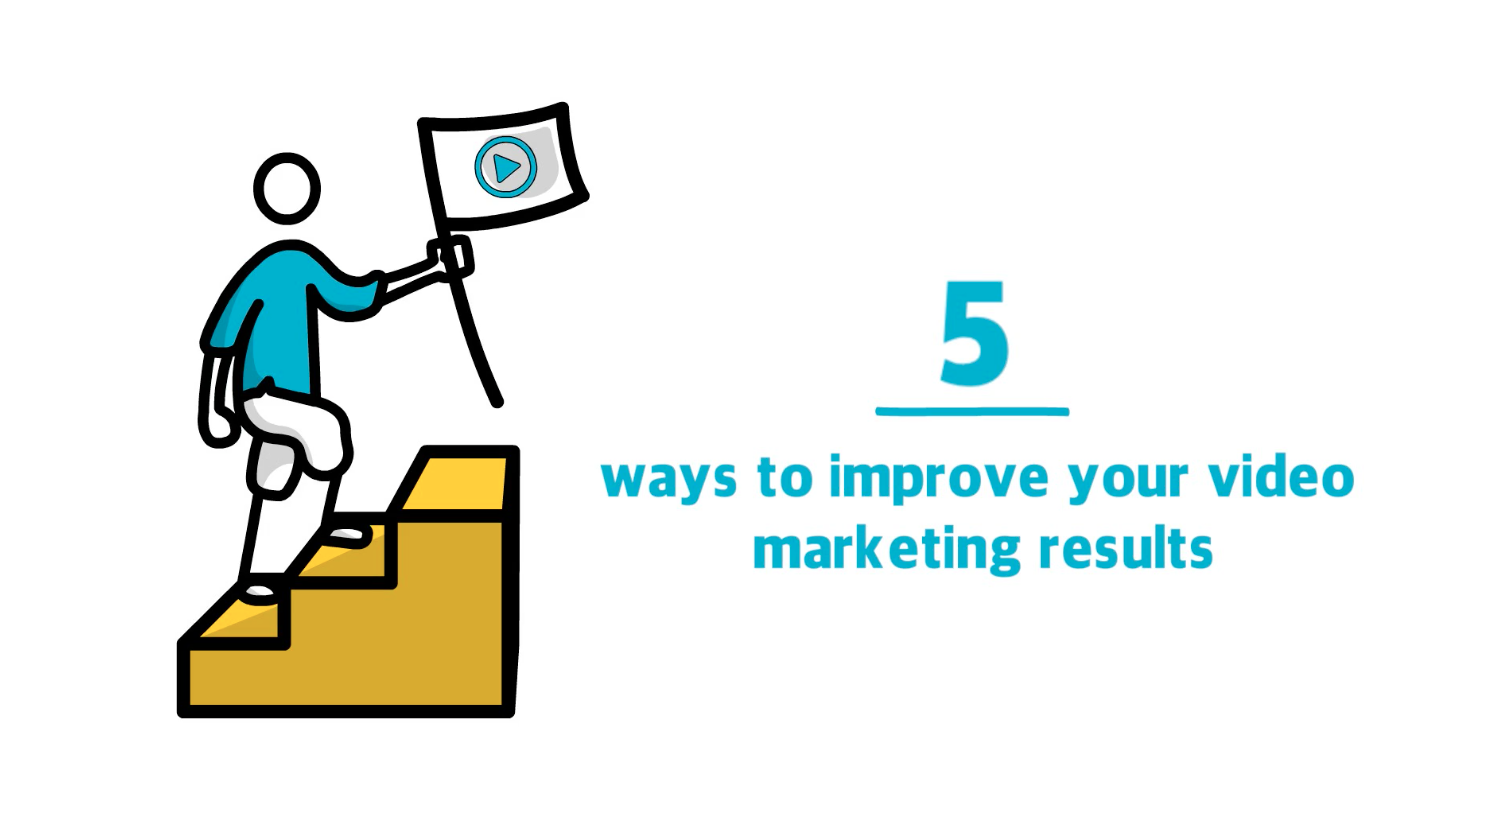 The Best Advice on Improving Your Video Marketing Conversion Rates